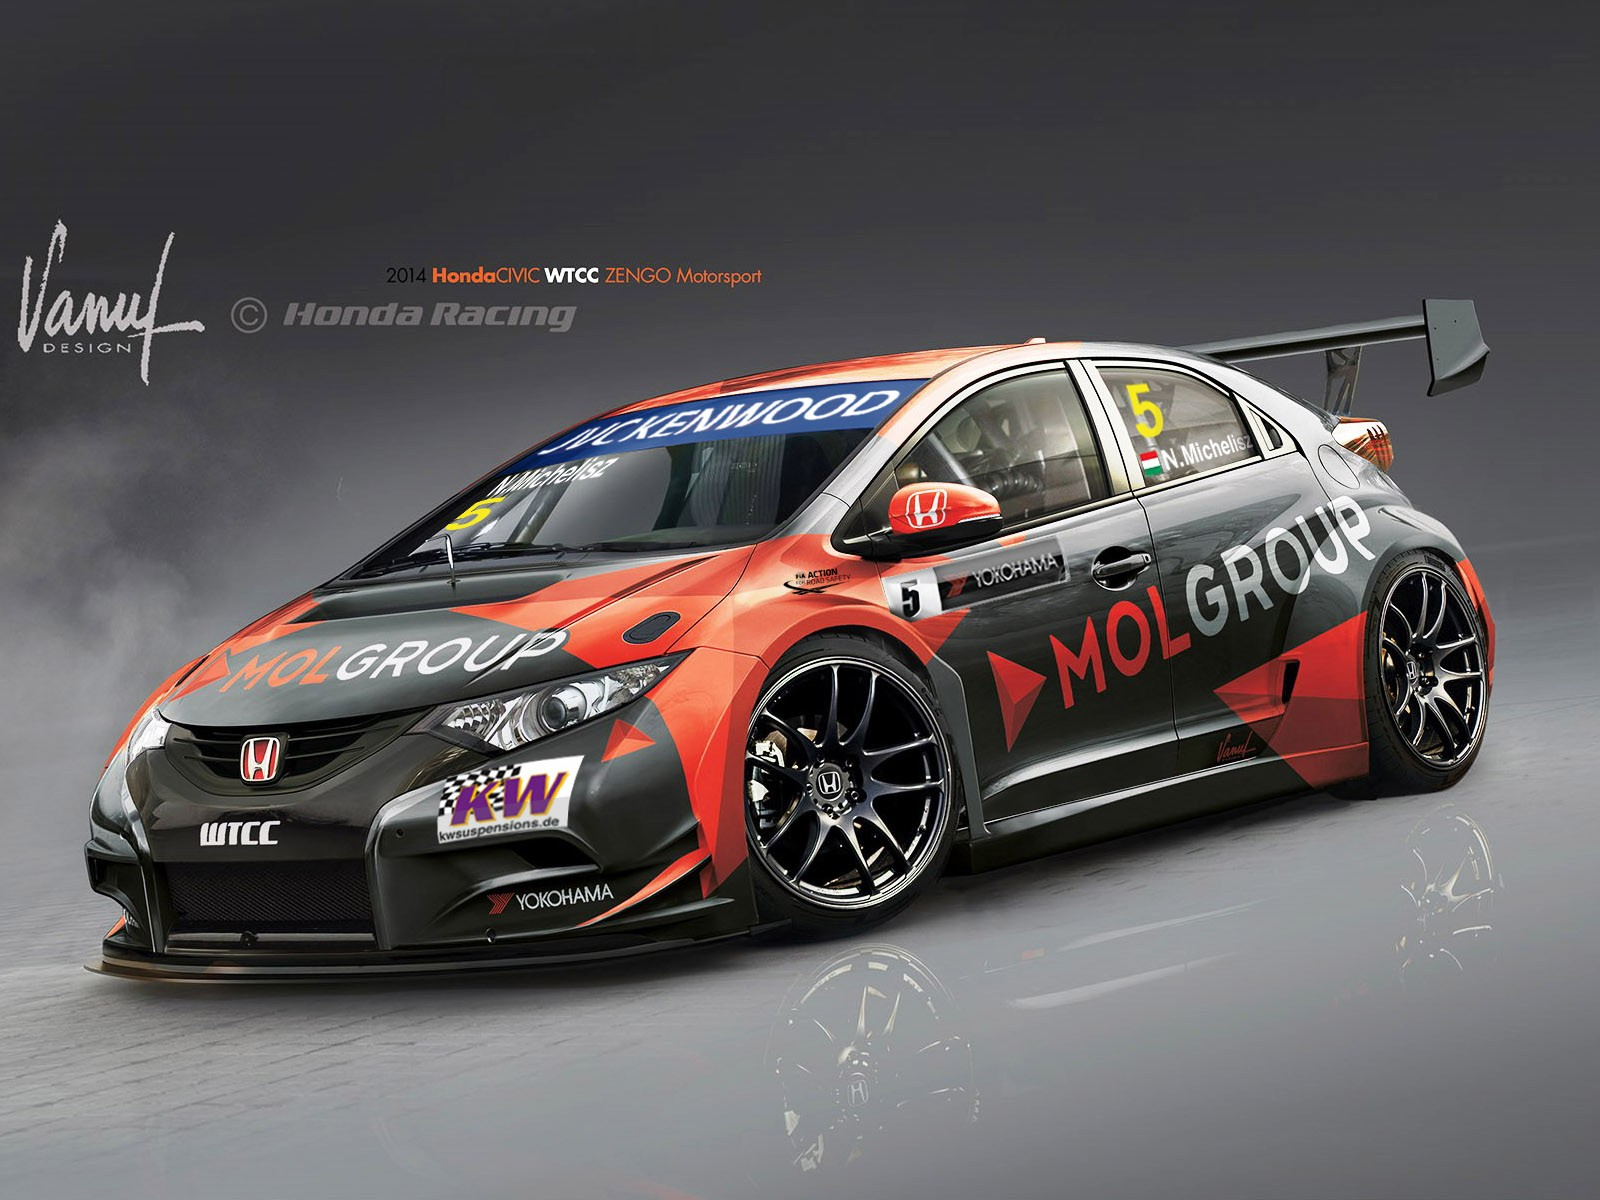 2014 Honda Civic WTCC Zengo Motorsport